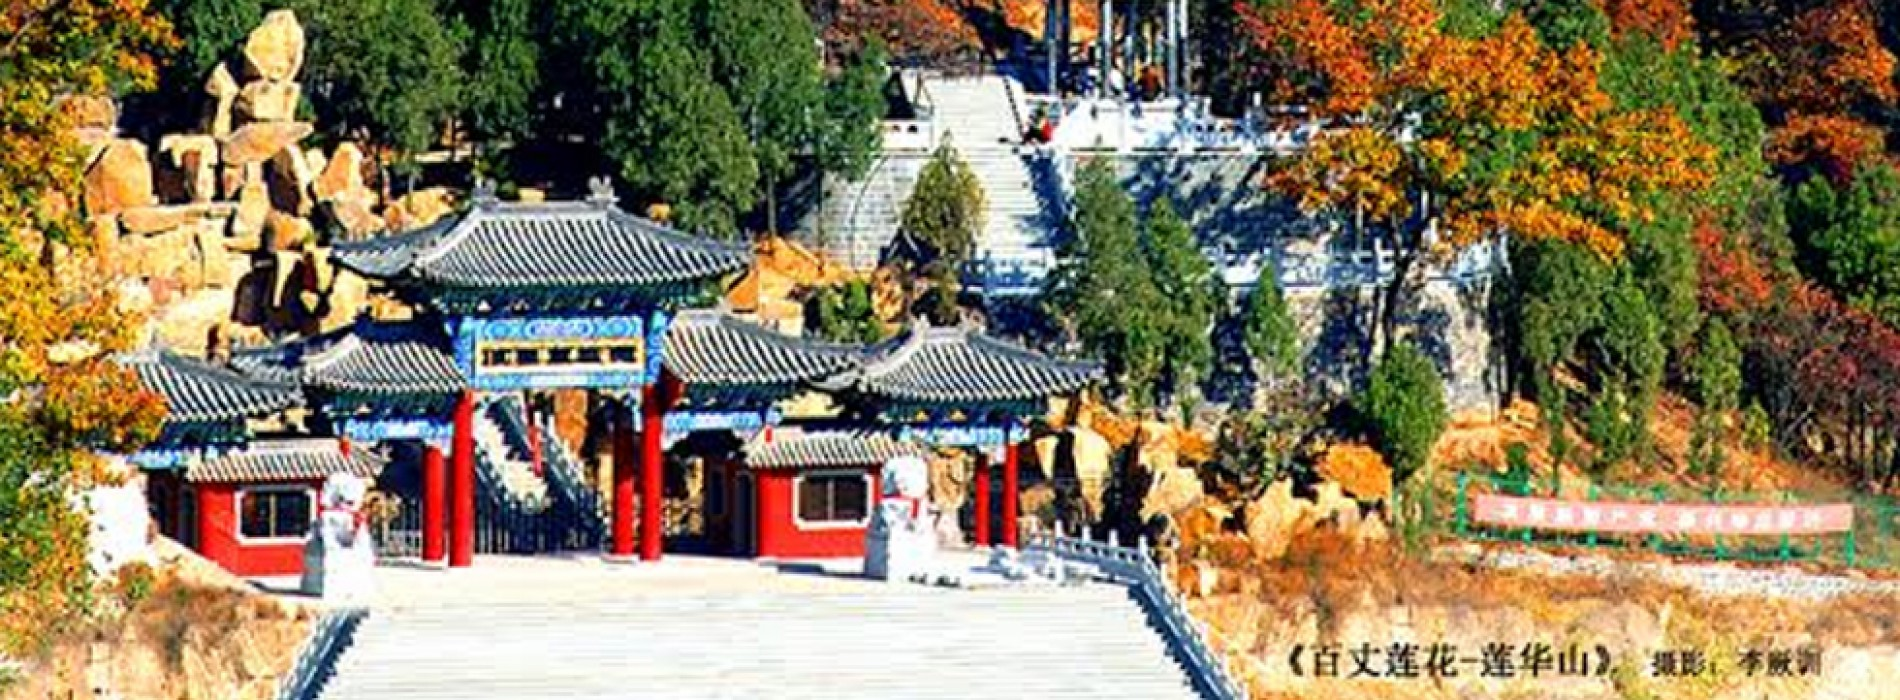 Blue Square Consultants to represent Shandong Tourism in India